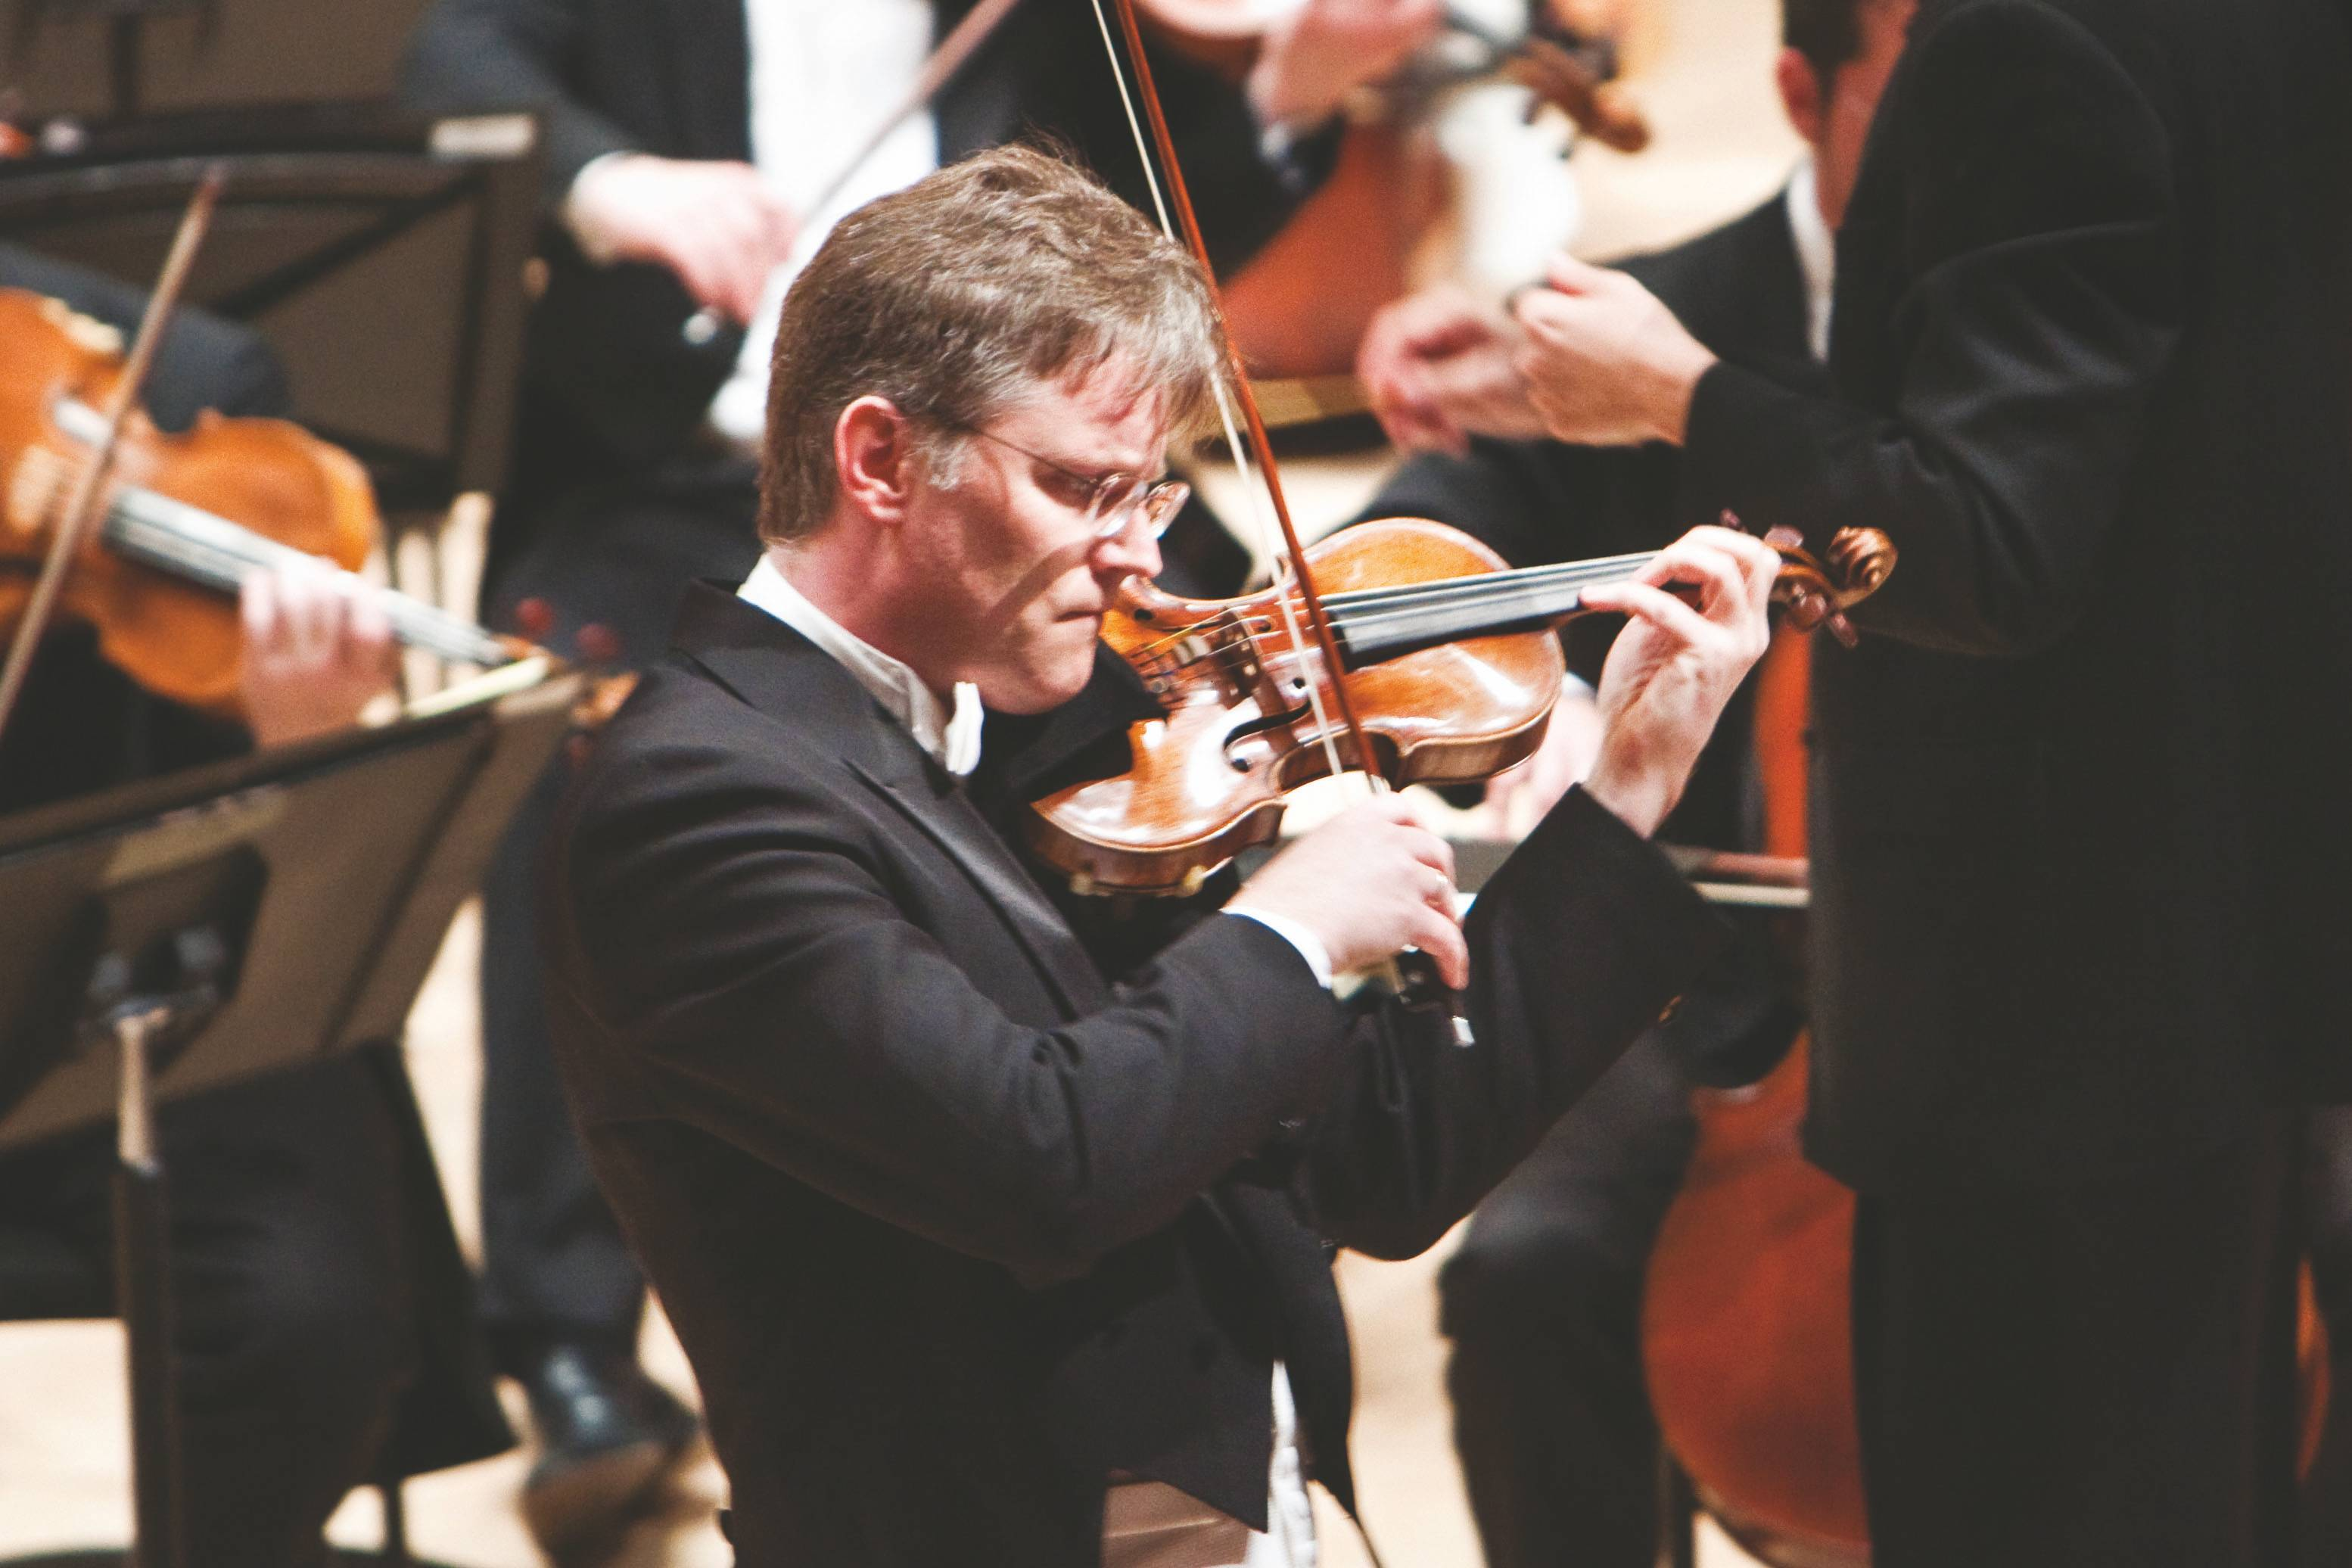 Violinist David Perry will lead the Chicago Philharmonic in Nordic Romance on Sunday, April 21 at 7 p.m. at Pick-Staiger in Evanston.